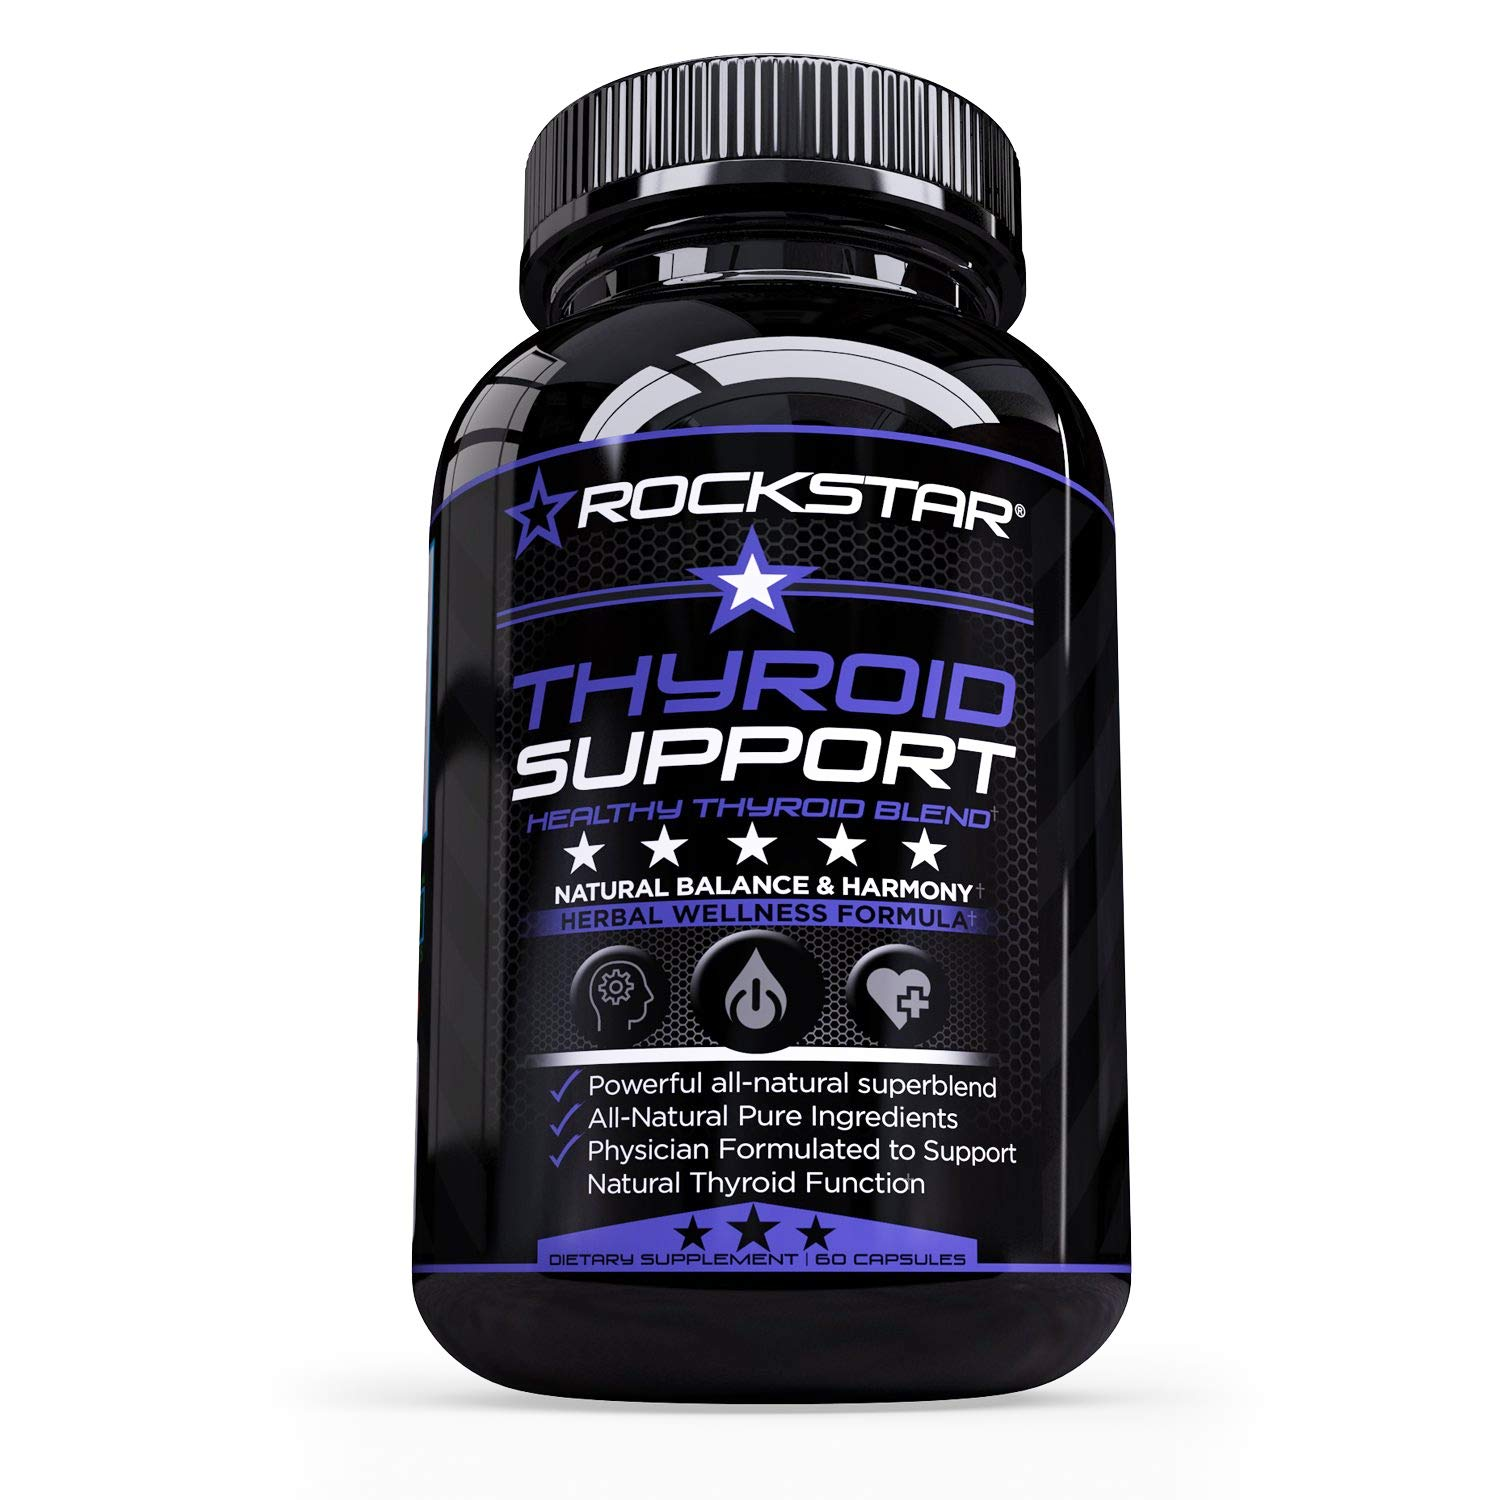 Thyroid Support by Rockstar - Thyroid Extract Blend leads to better Energy, Metabolism & Wellbeing - Vegetarian, Soy & Gluten Free, 60 Veggie Caps